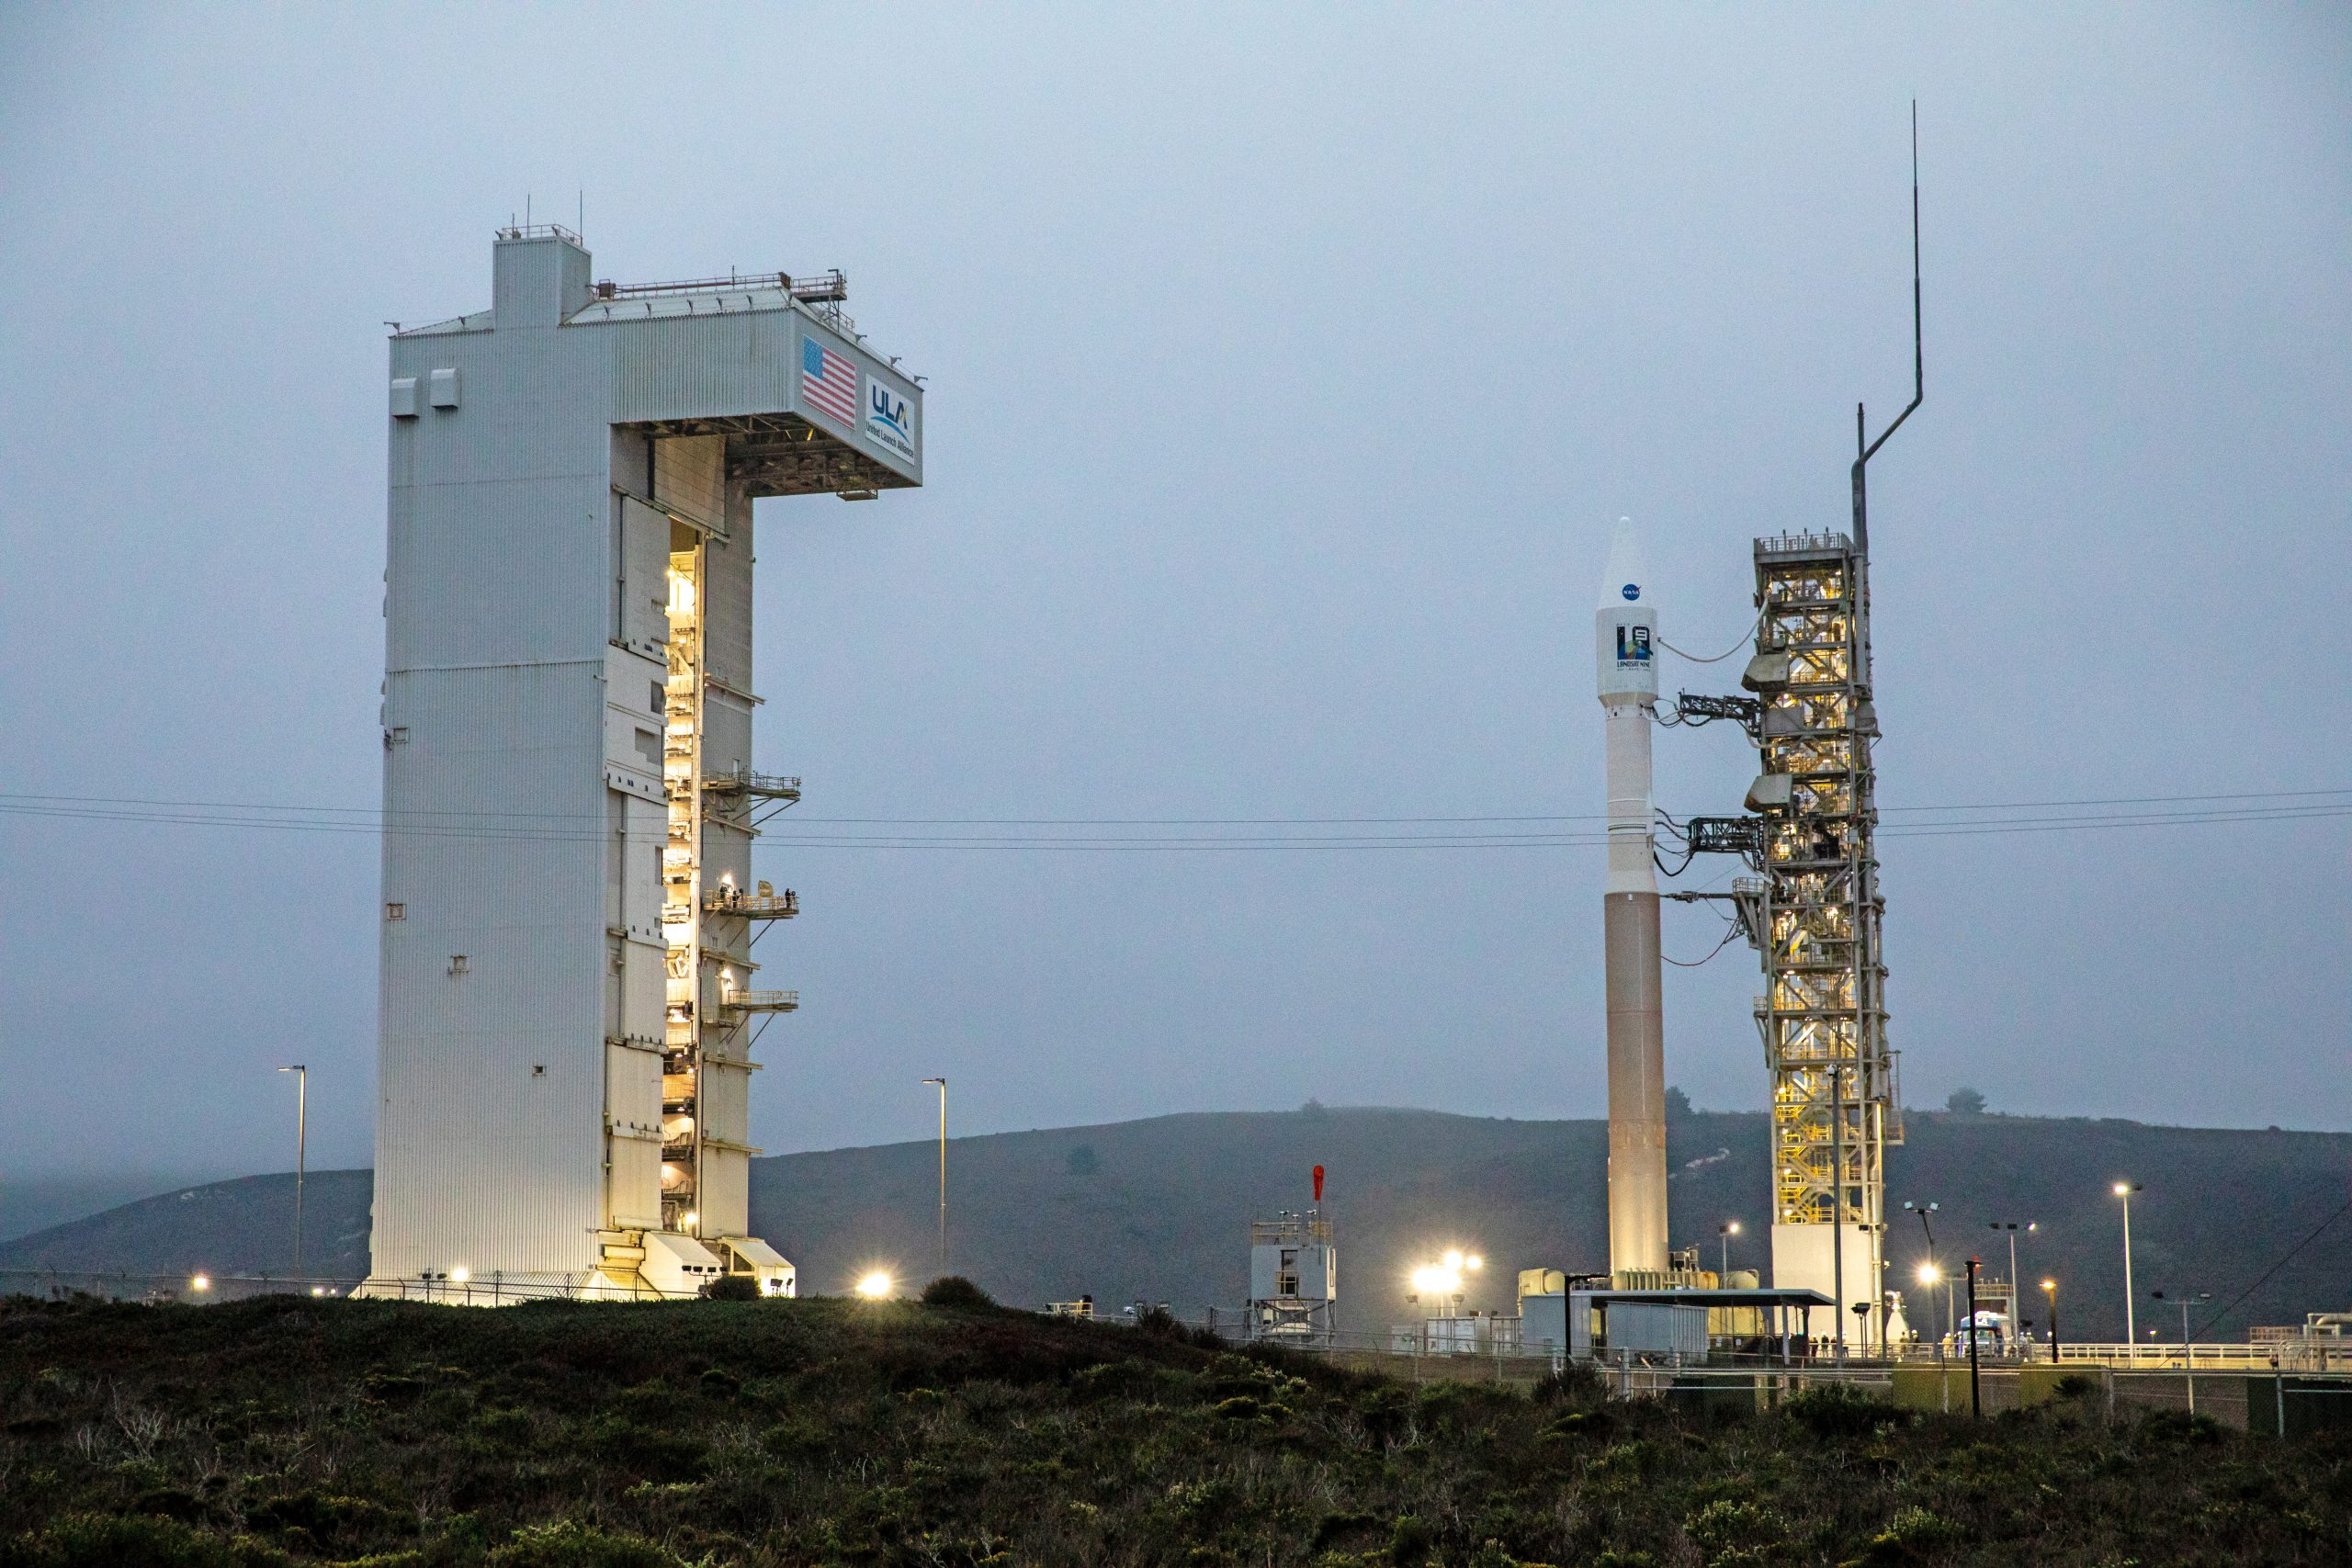 The Landsat 9 satellite, a joint NASA/U.S. Geological Survey mission that will continue the legacy of monitoring Earth's land and coastal regions, is scheduled for liftoff today from Vandenberg Space Force Base in California at 11:12 a.m. PDT (2:12 p.m. EDT).